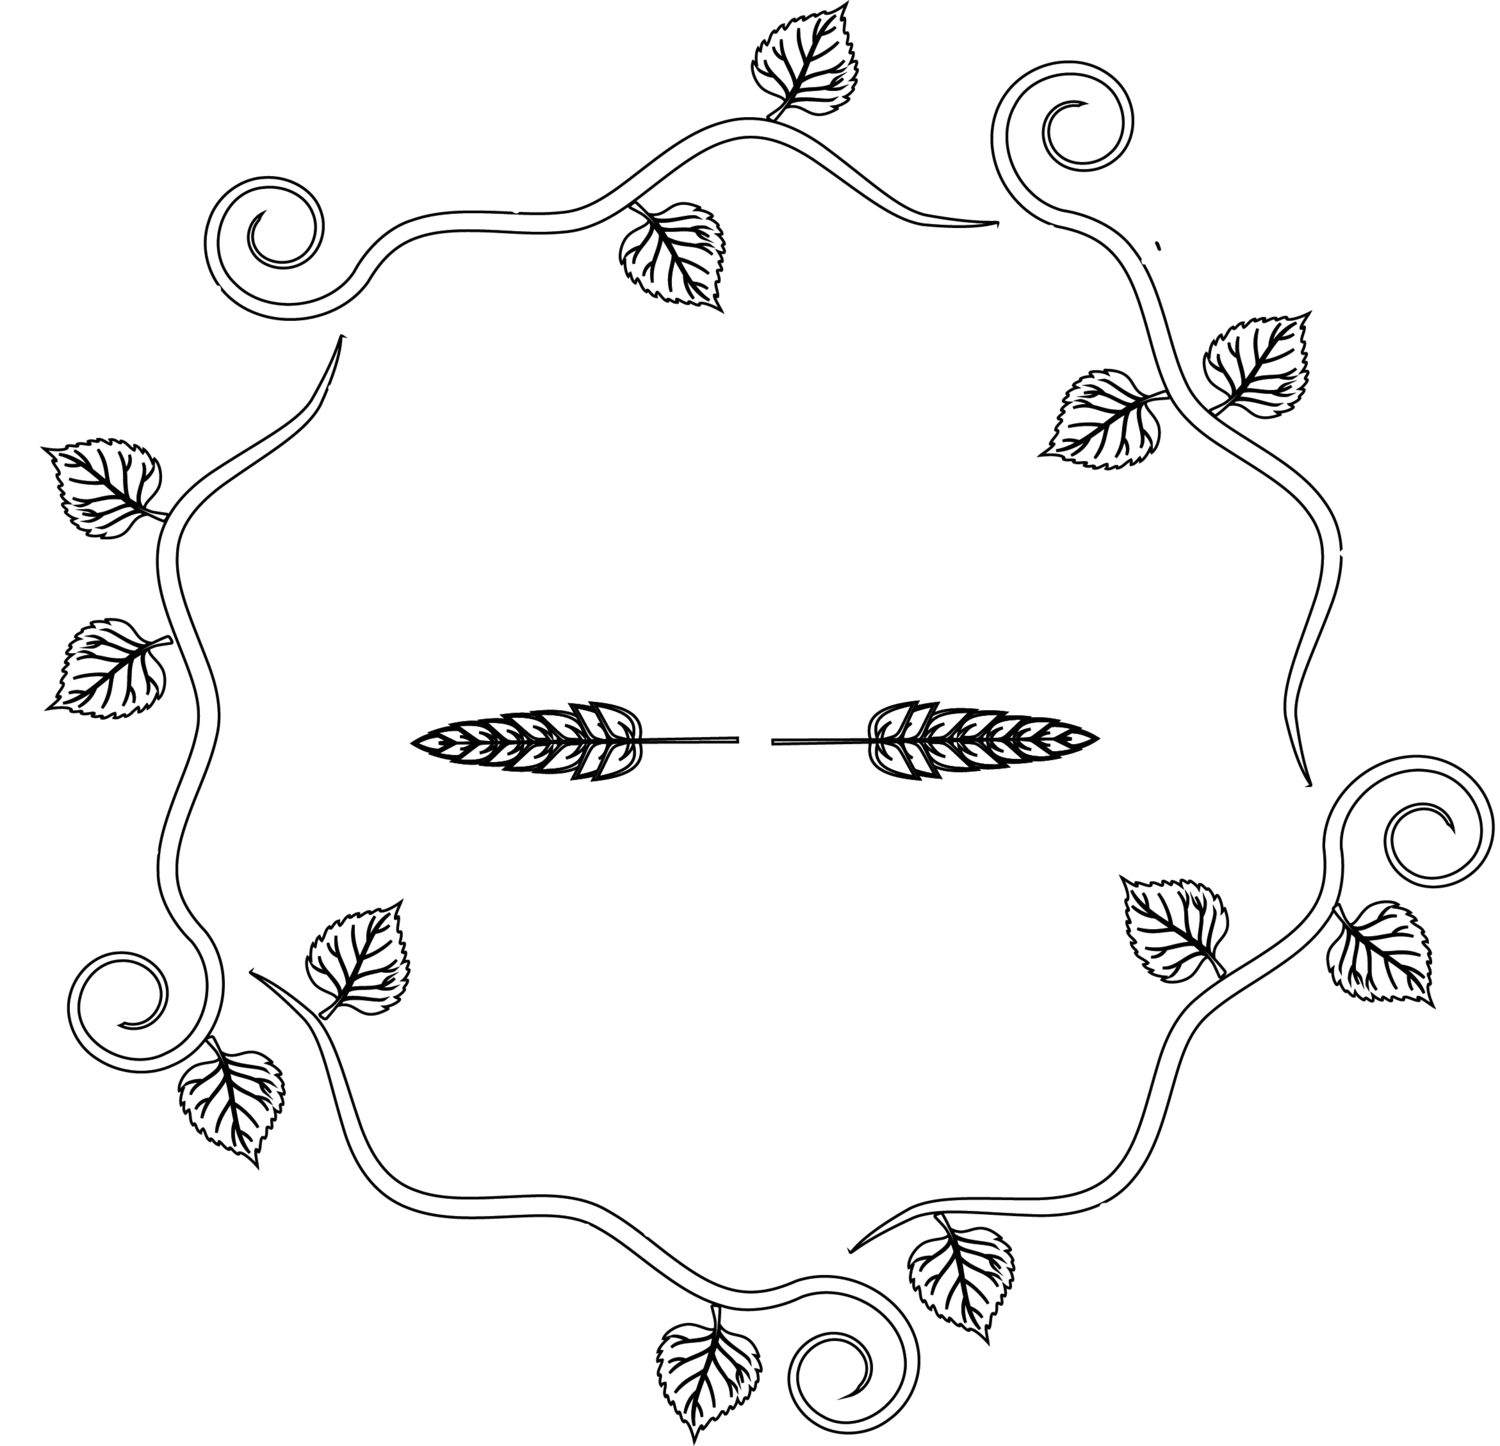 THE MOORBROOK